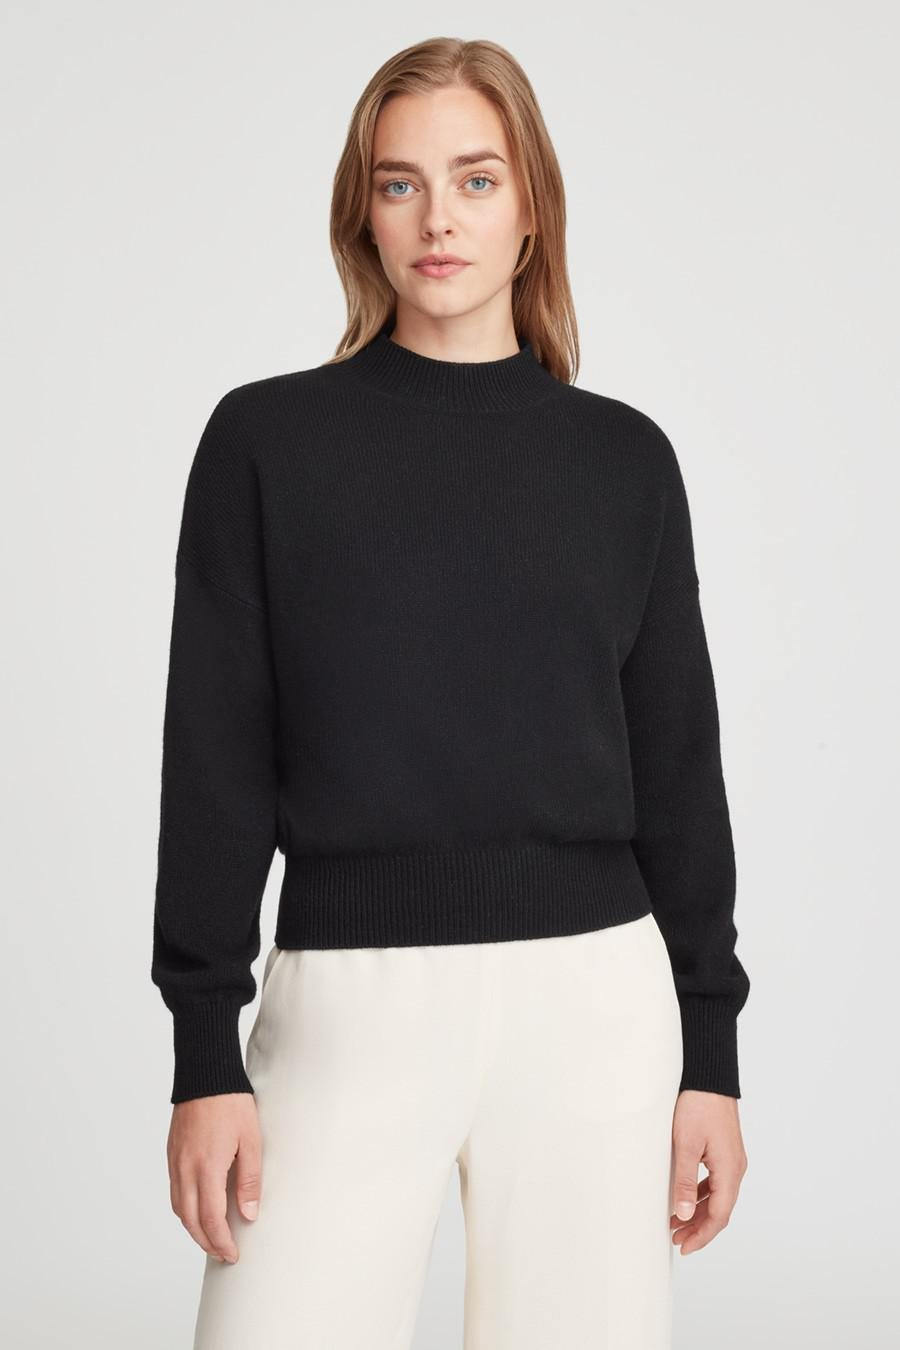 Women's Recycled Mock Neck Sweater in Black | Size: 1